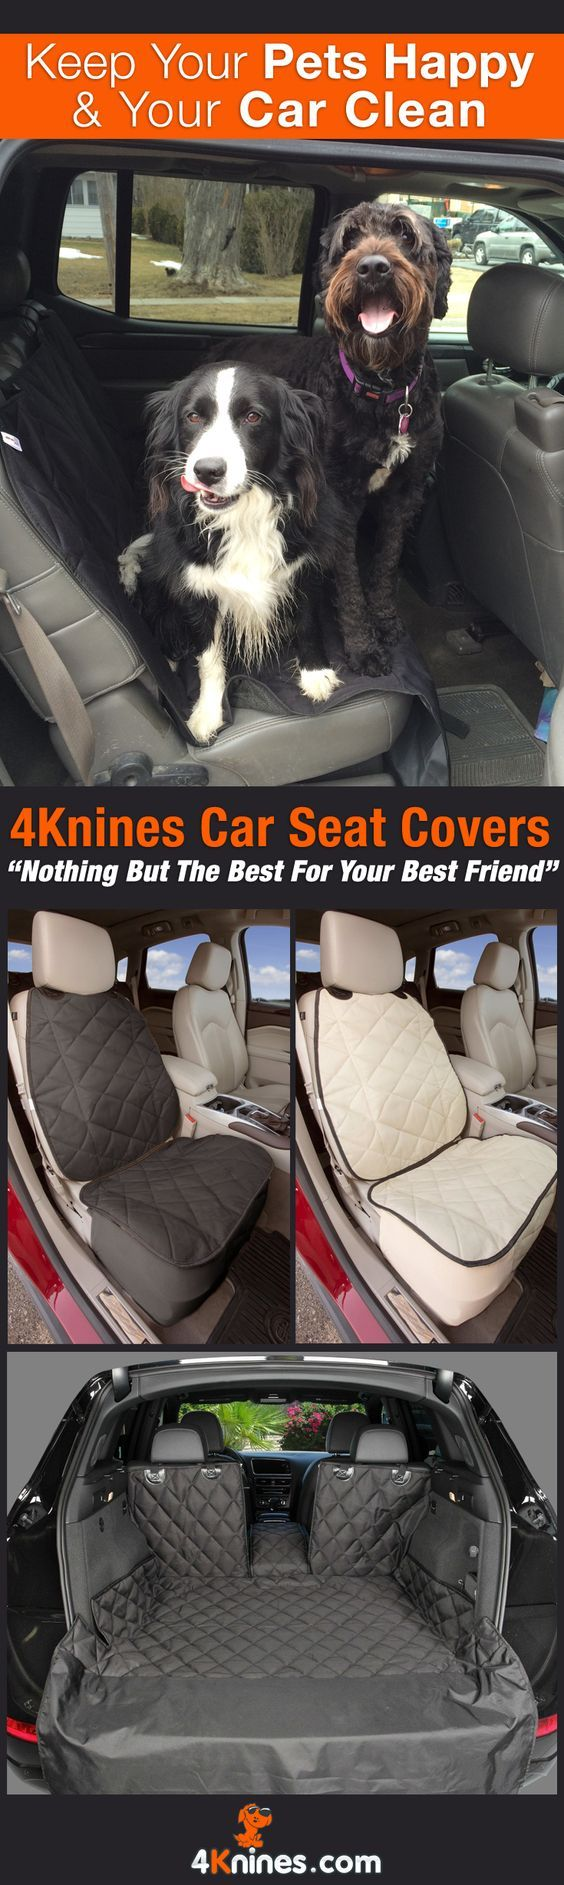 Like taking your dog for adventures? 4Knines Dog Car Seat Covers will protect your car from claws, fur, and dirt. Keep your car seats clean and fur-free on the way home: http://4knines.com/collections/all